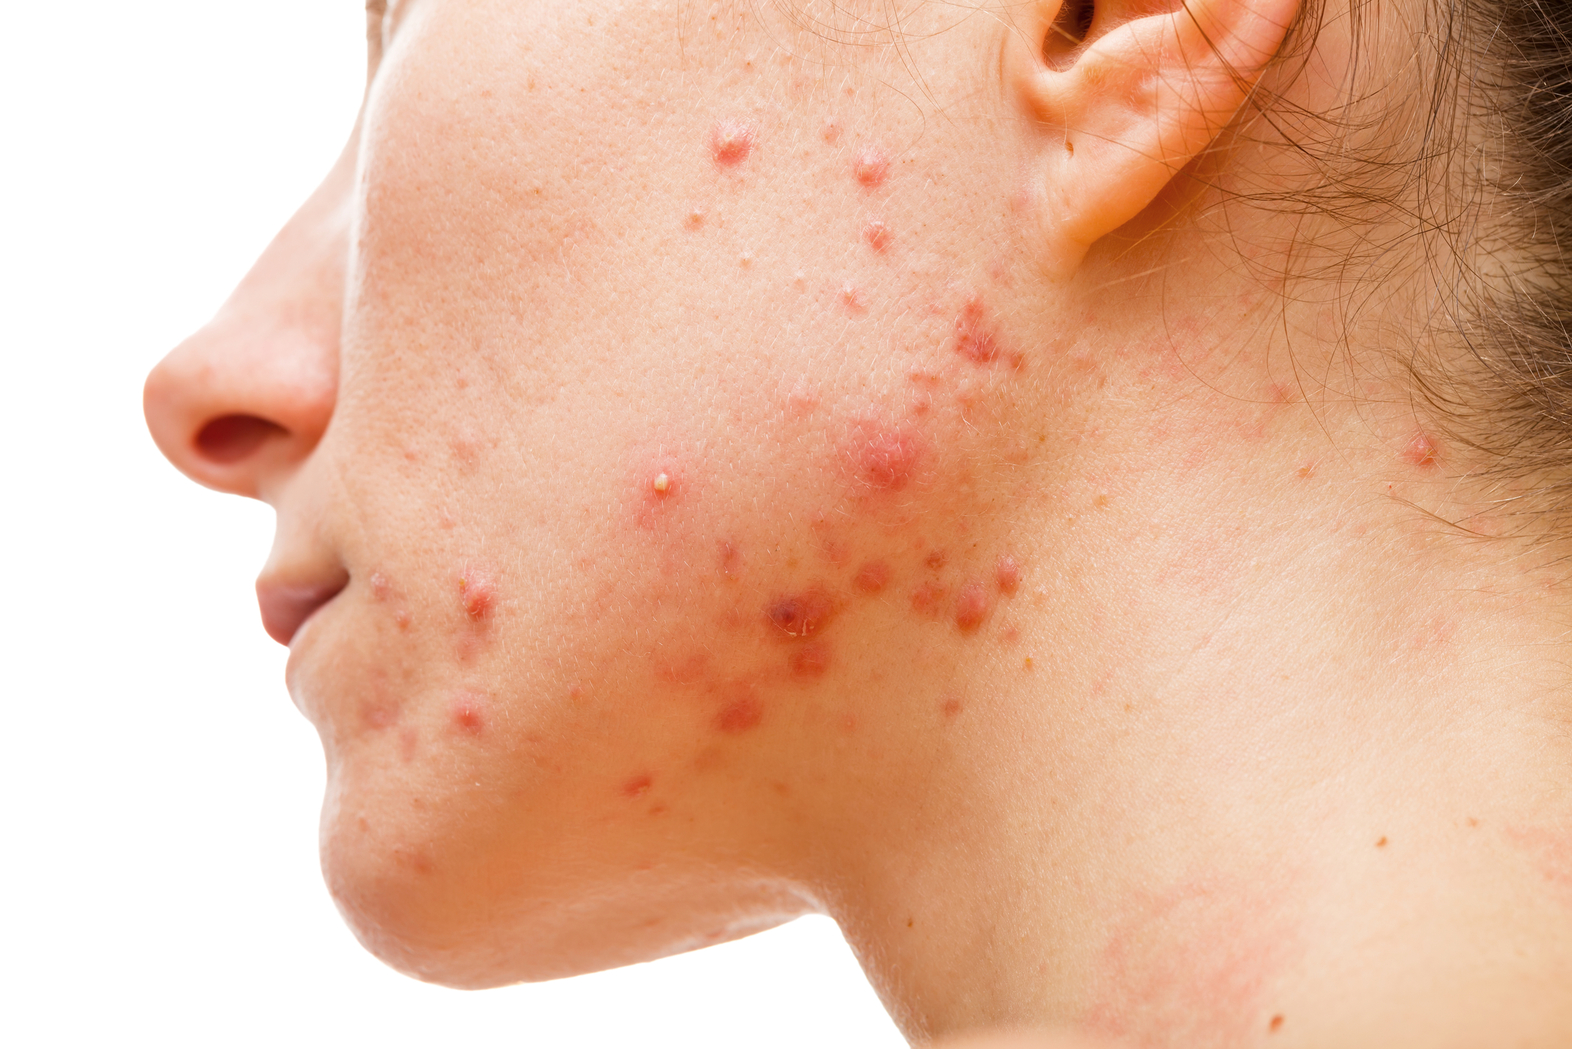 Hard Water on Your Skin: Does It Trigger Acne?